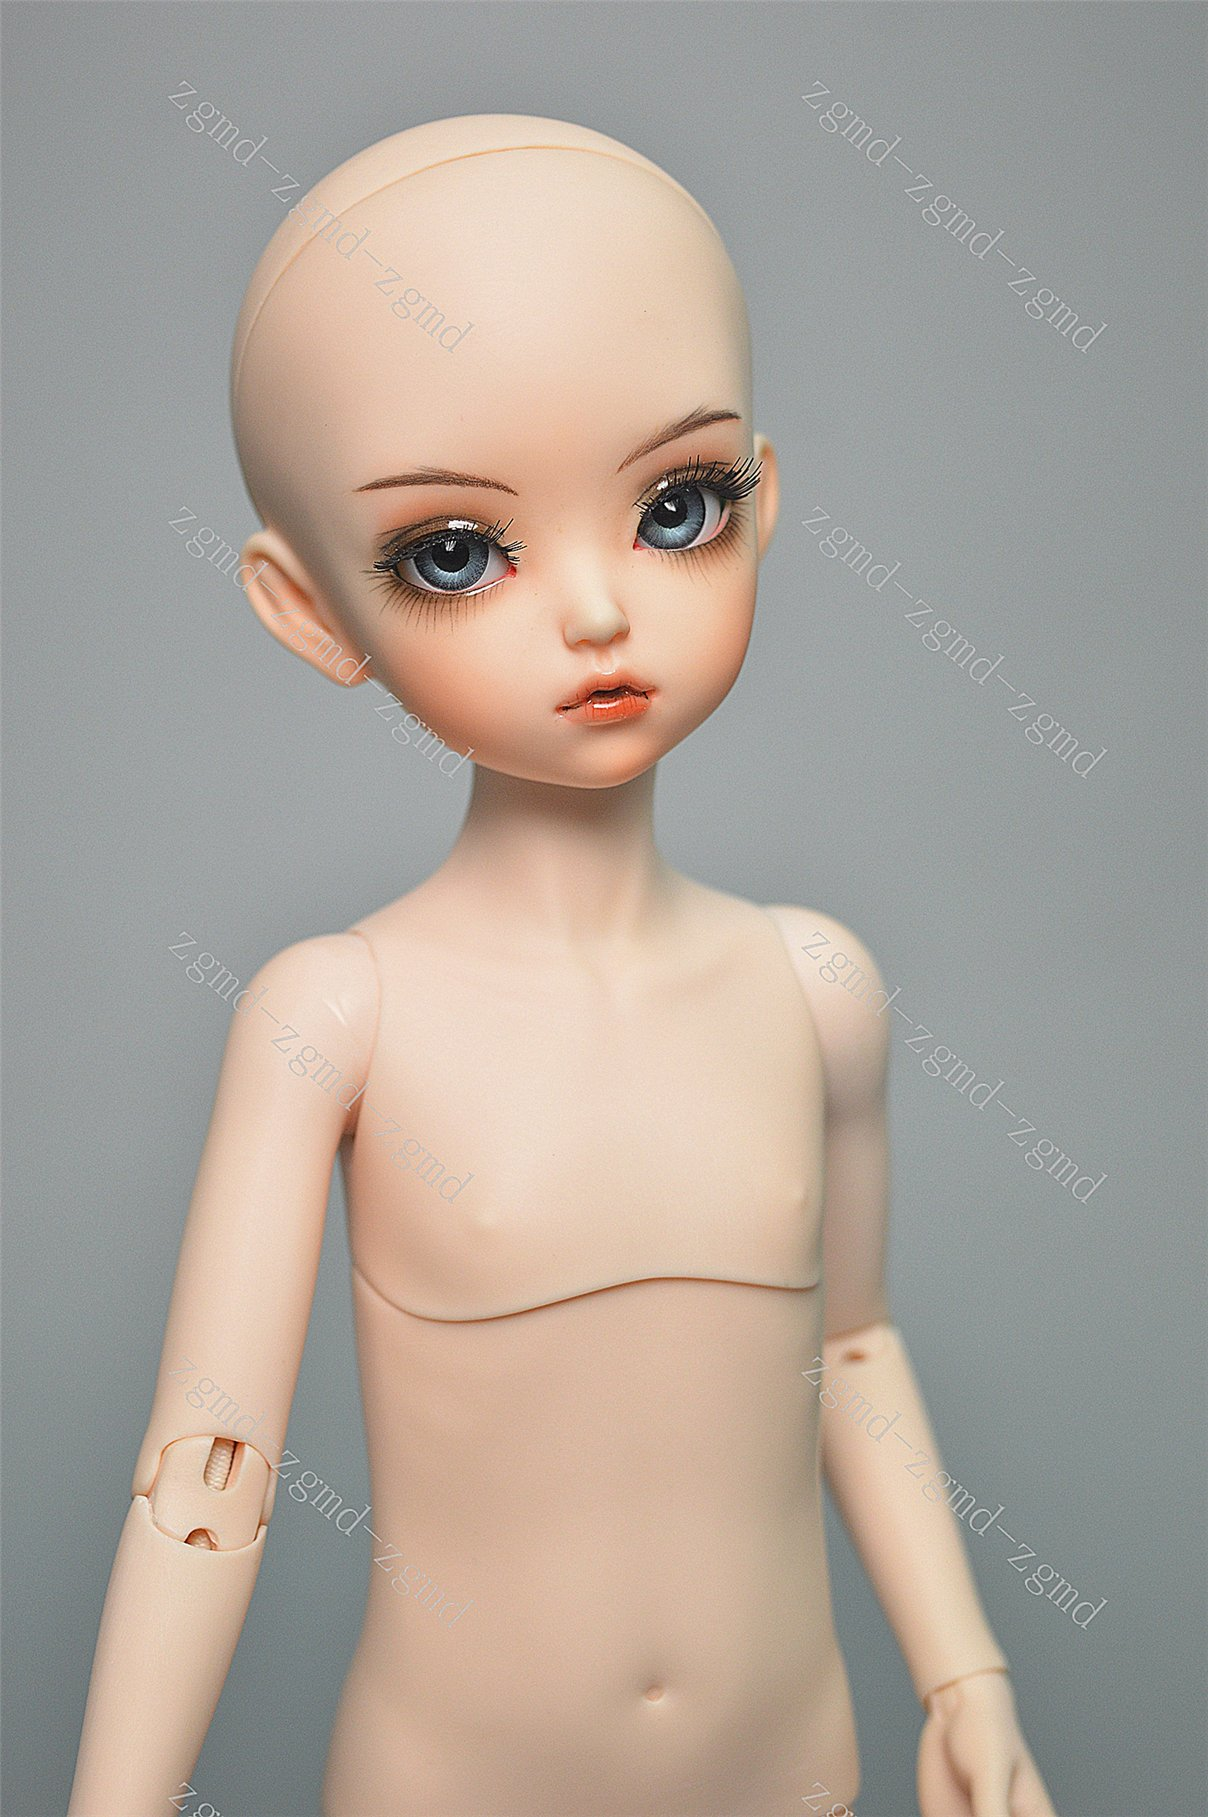 Zgmd 1/6 BJD Doll SD Doll Iren little boy's body and head by Zgmd (Image #2)